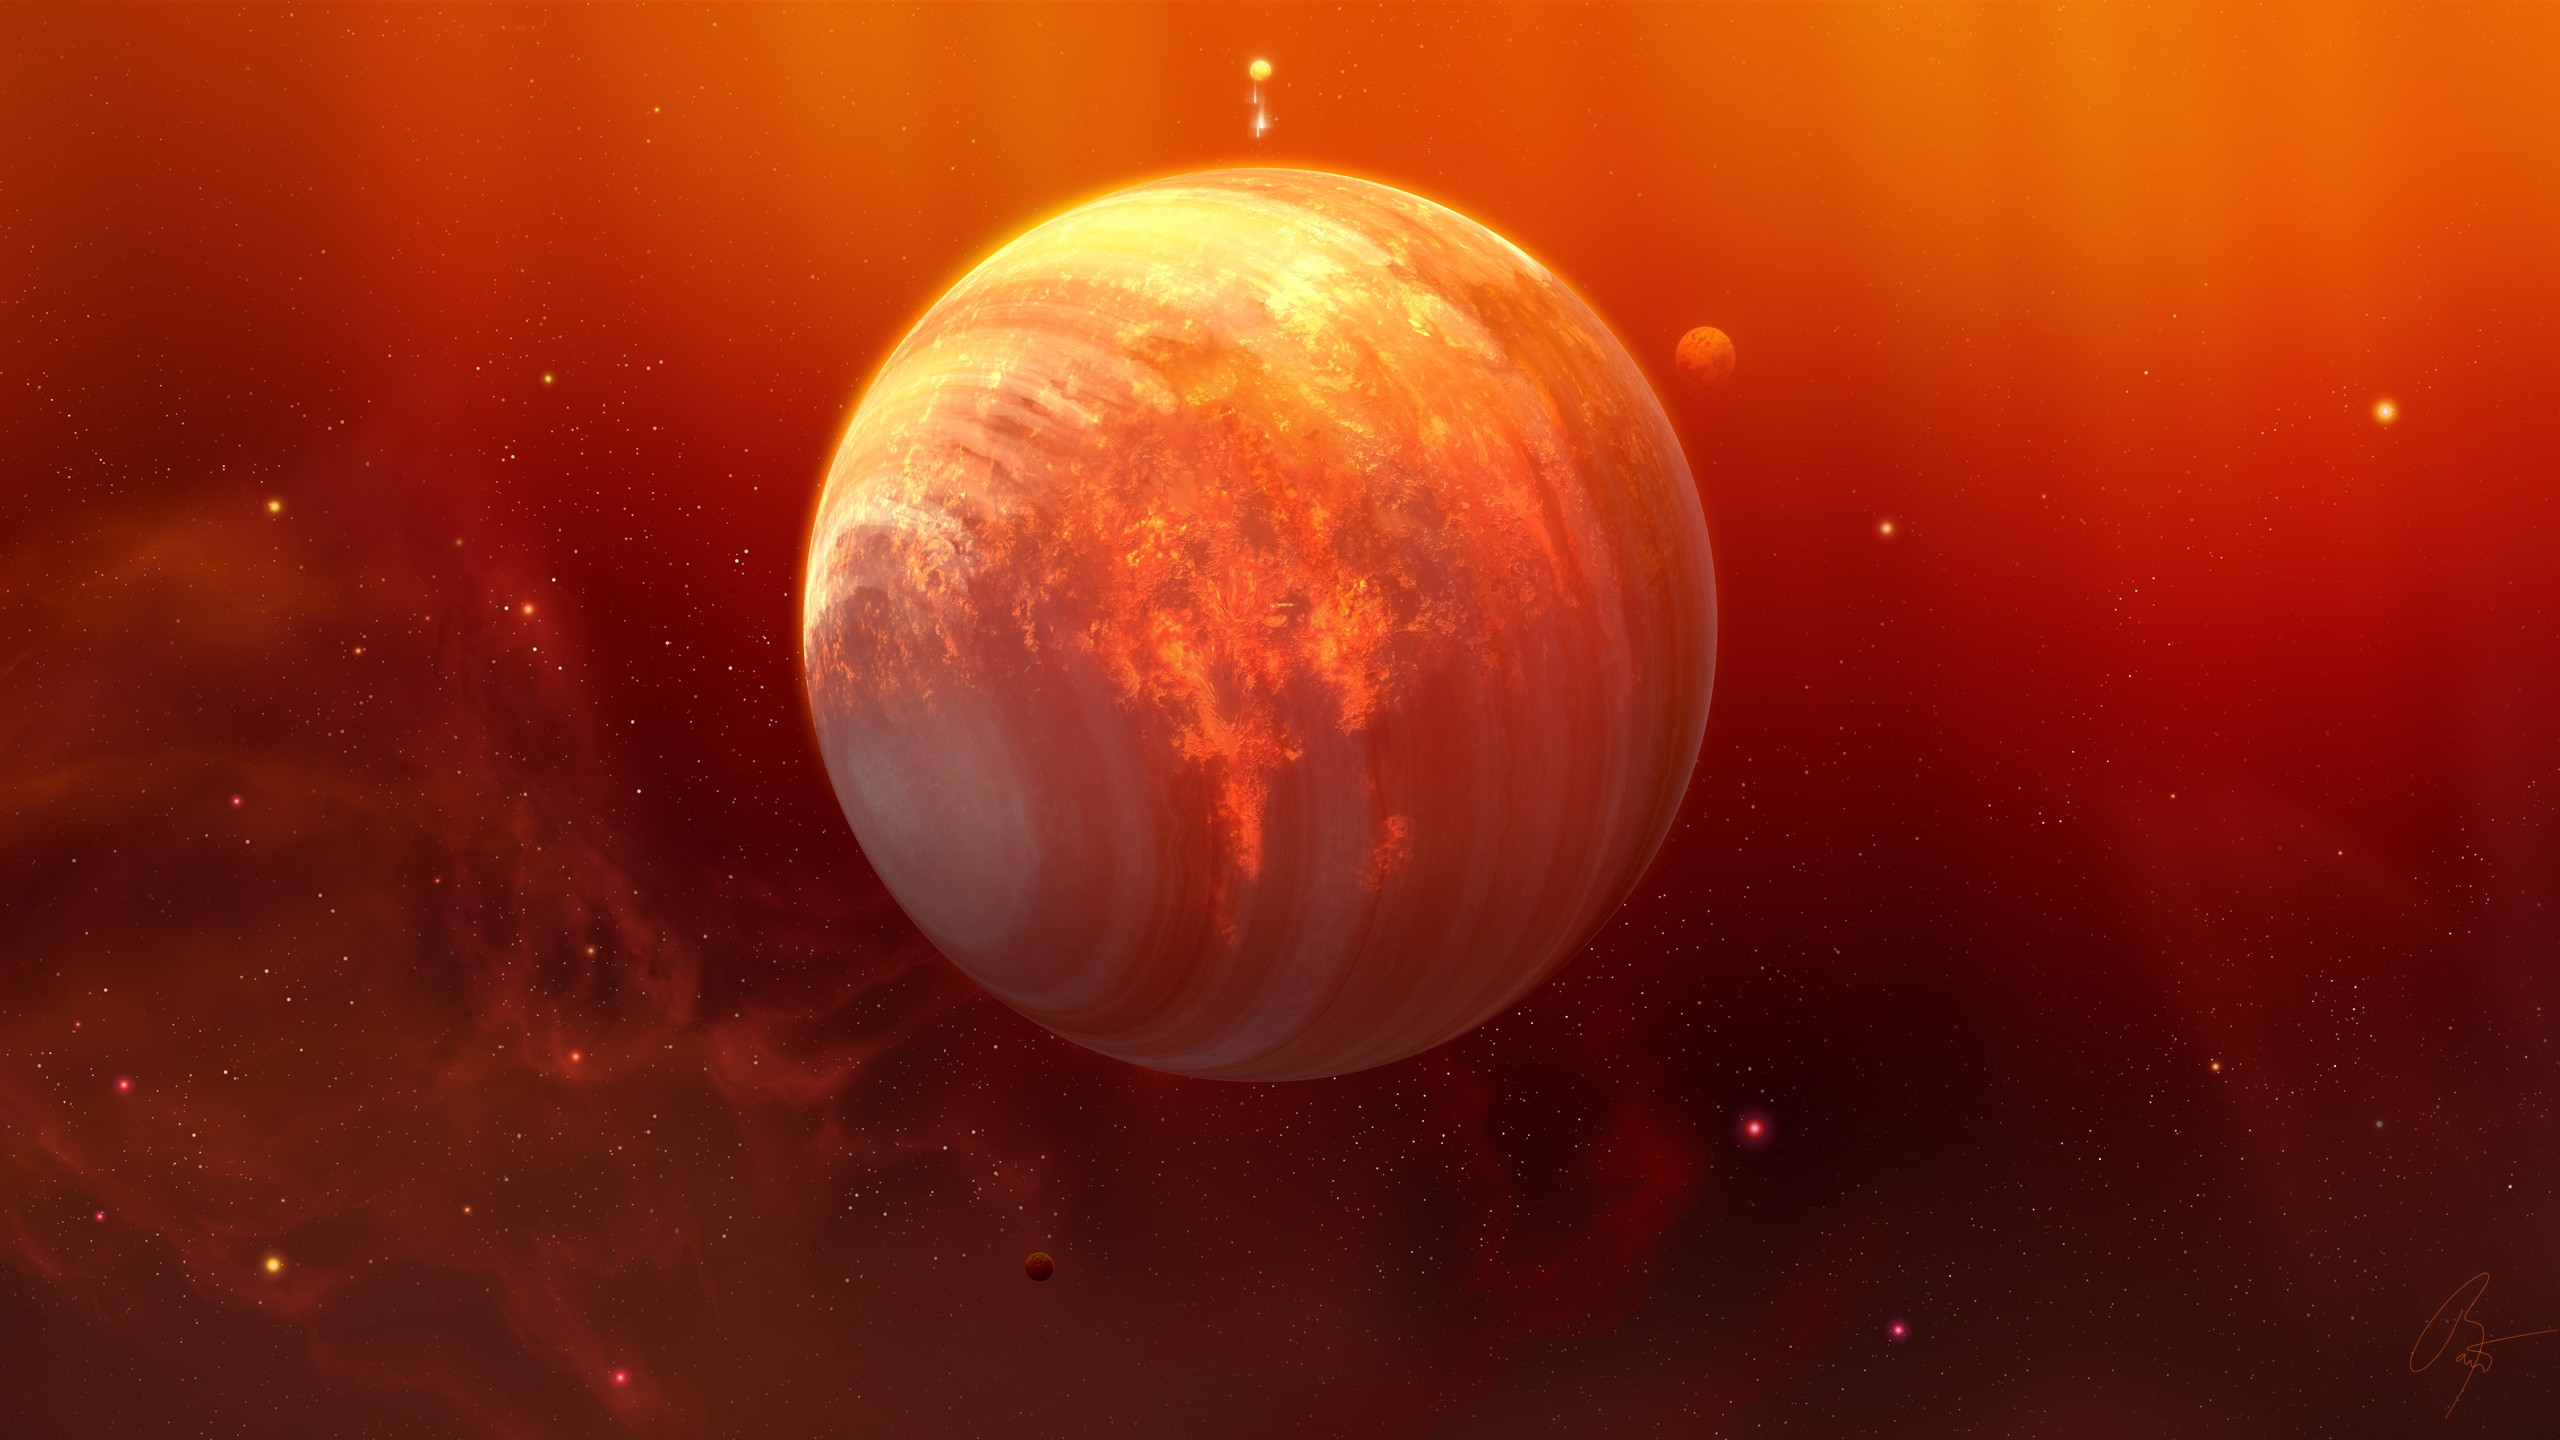 Planets full hd wallpaper and background image 2560x1440 for Plante orange